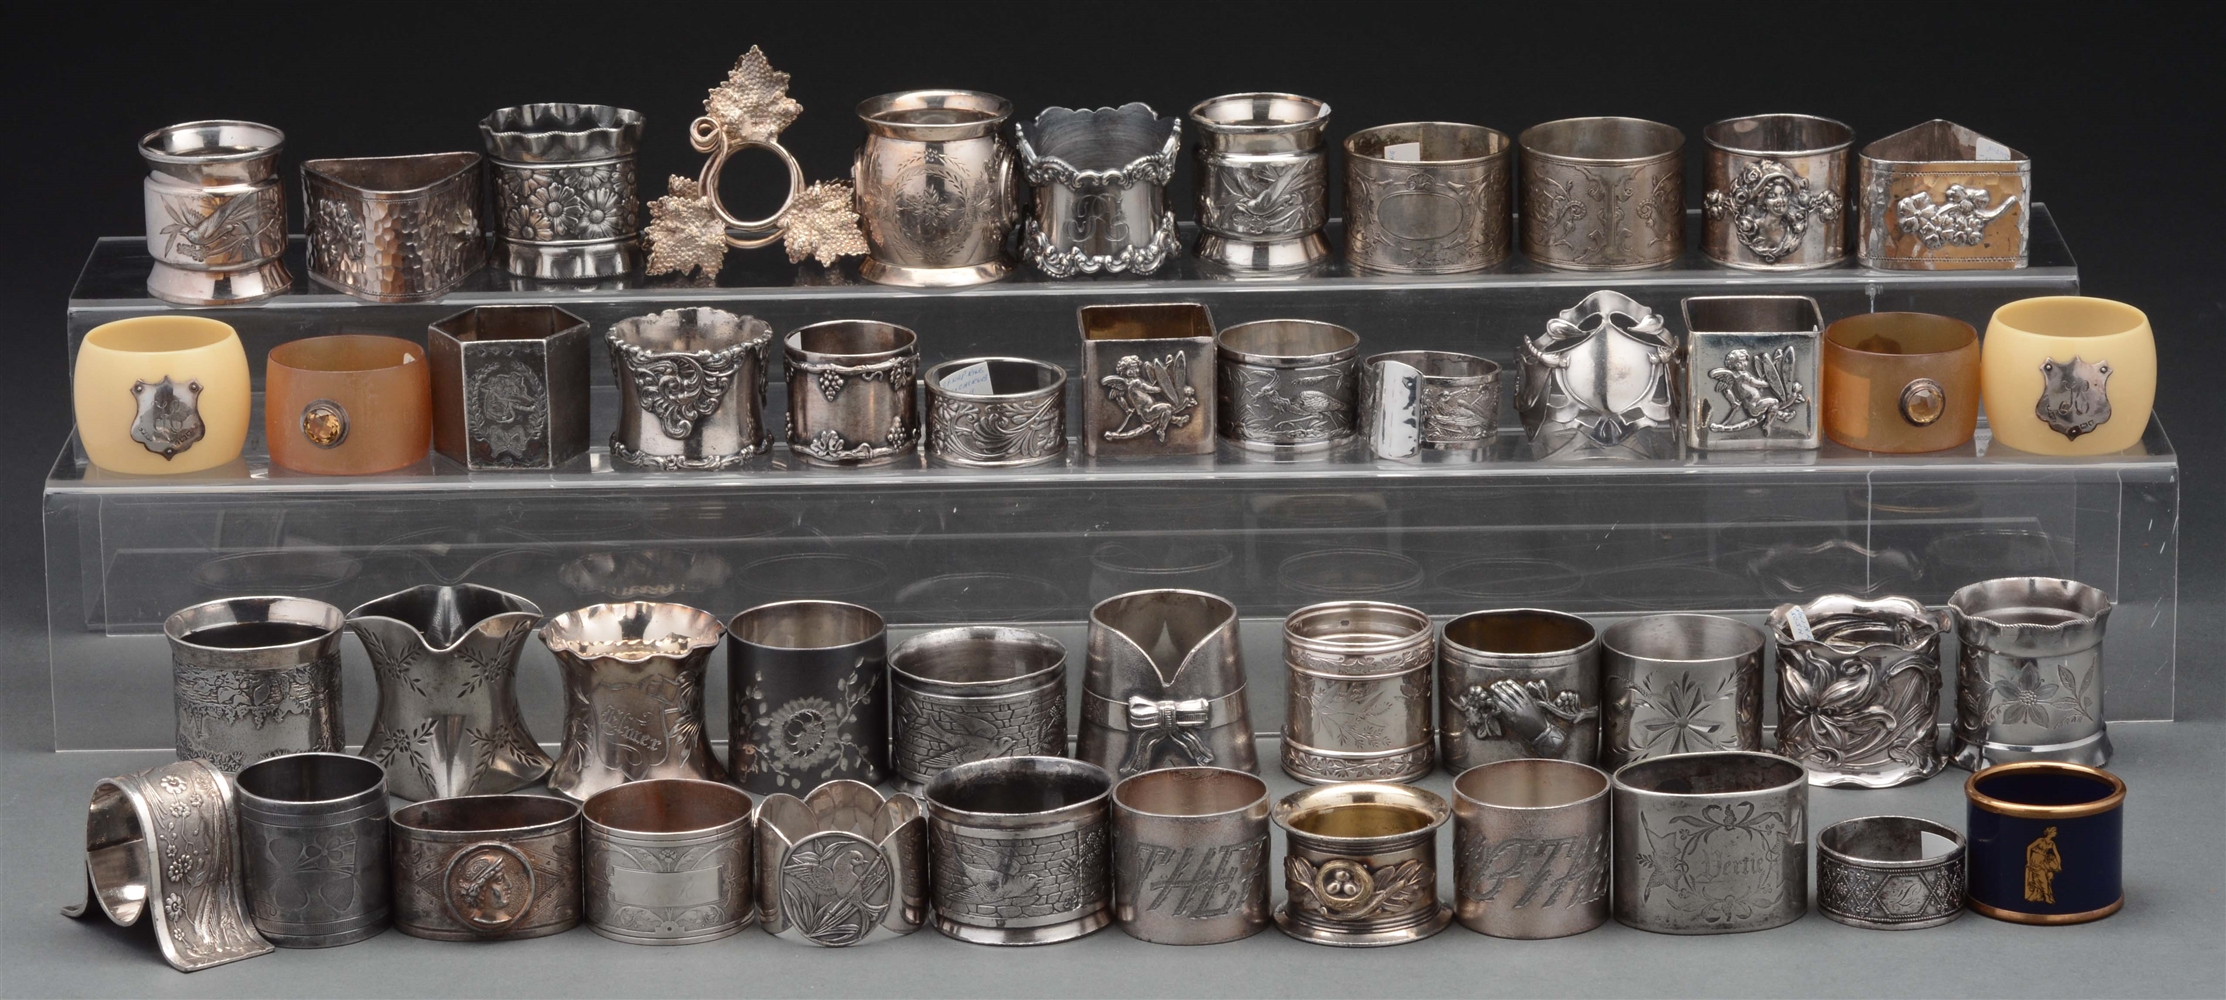 Lot Of Over 50 Silver Plated Antique Napkin Rings.